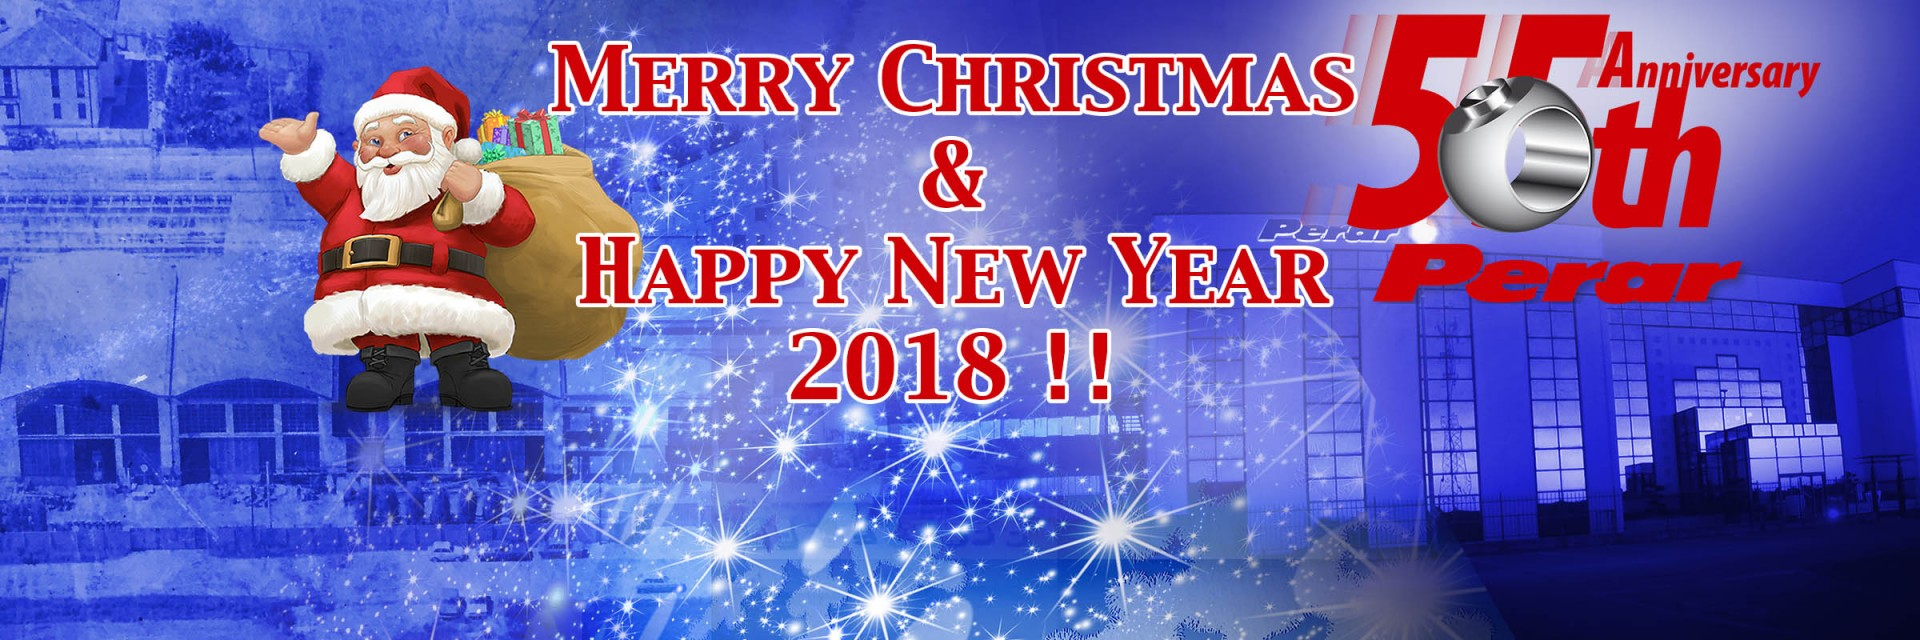 Merry Christmas and Happy New 2018